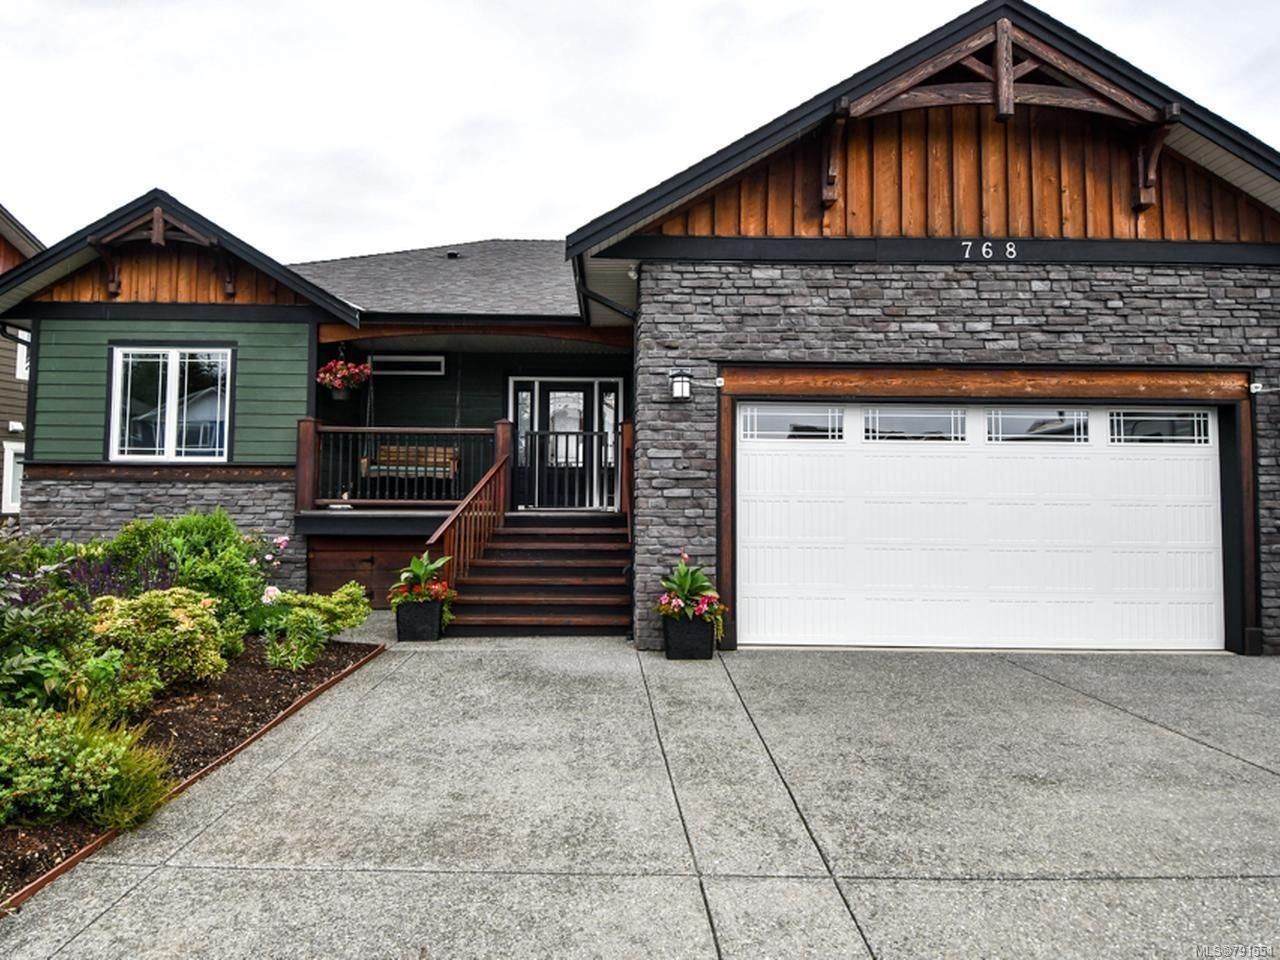 Main Photo: 768 TIMBERLINE DRIVE in CAMPBELL RIVER: CR Willow Point House for sale (Campbell River)  : MLS®# 791551